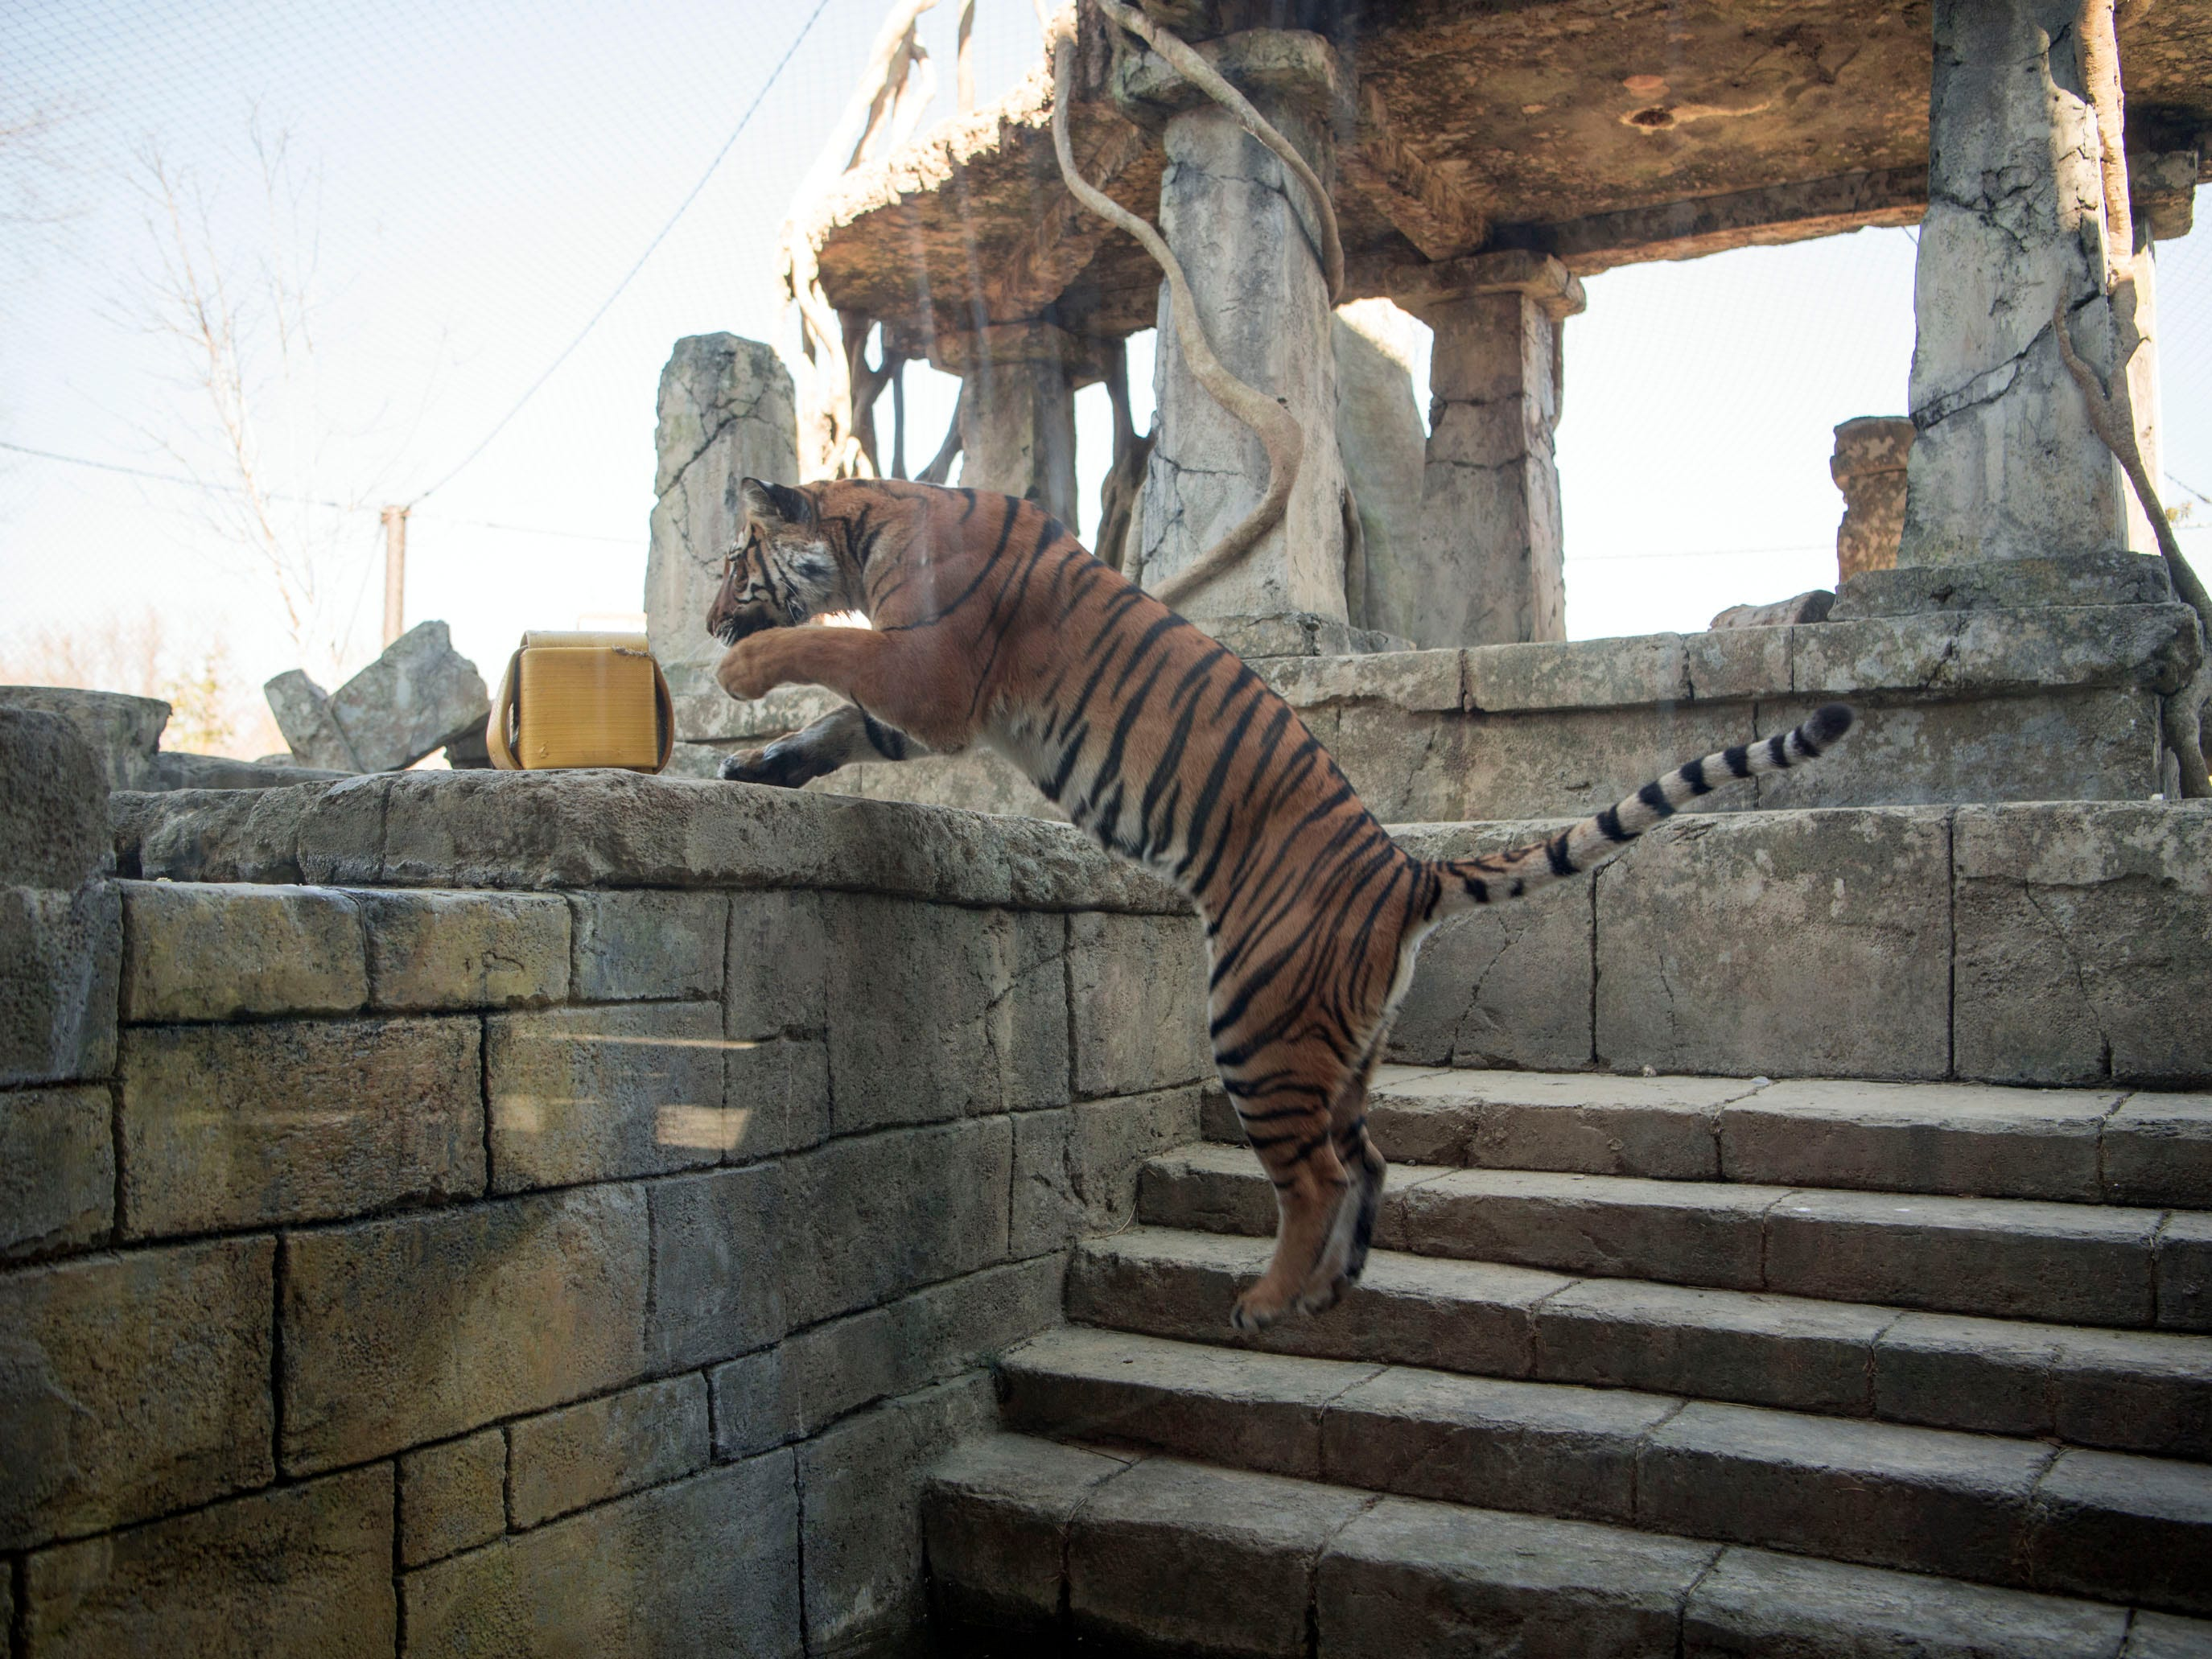 Arya, a rare Malayan tiger, leaps onto a landing at Zoo Knoxville's Tiger Forest habitat on Monday, January 28, 2019.